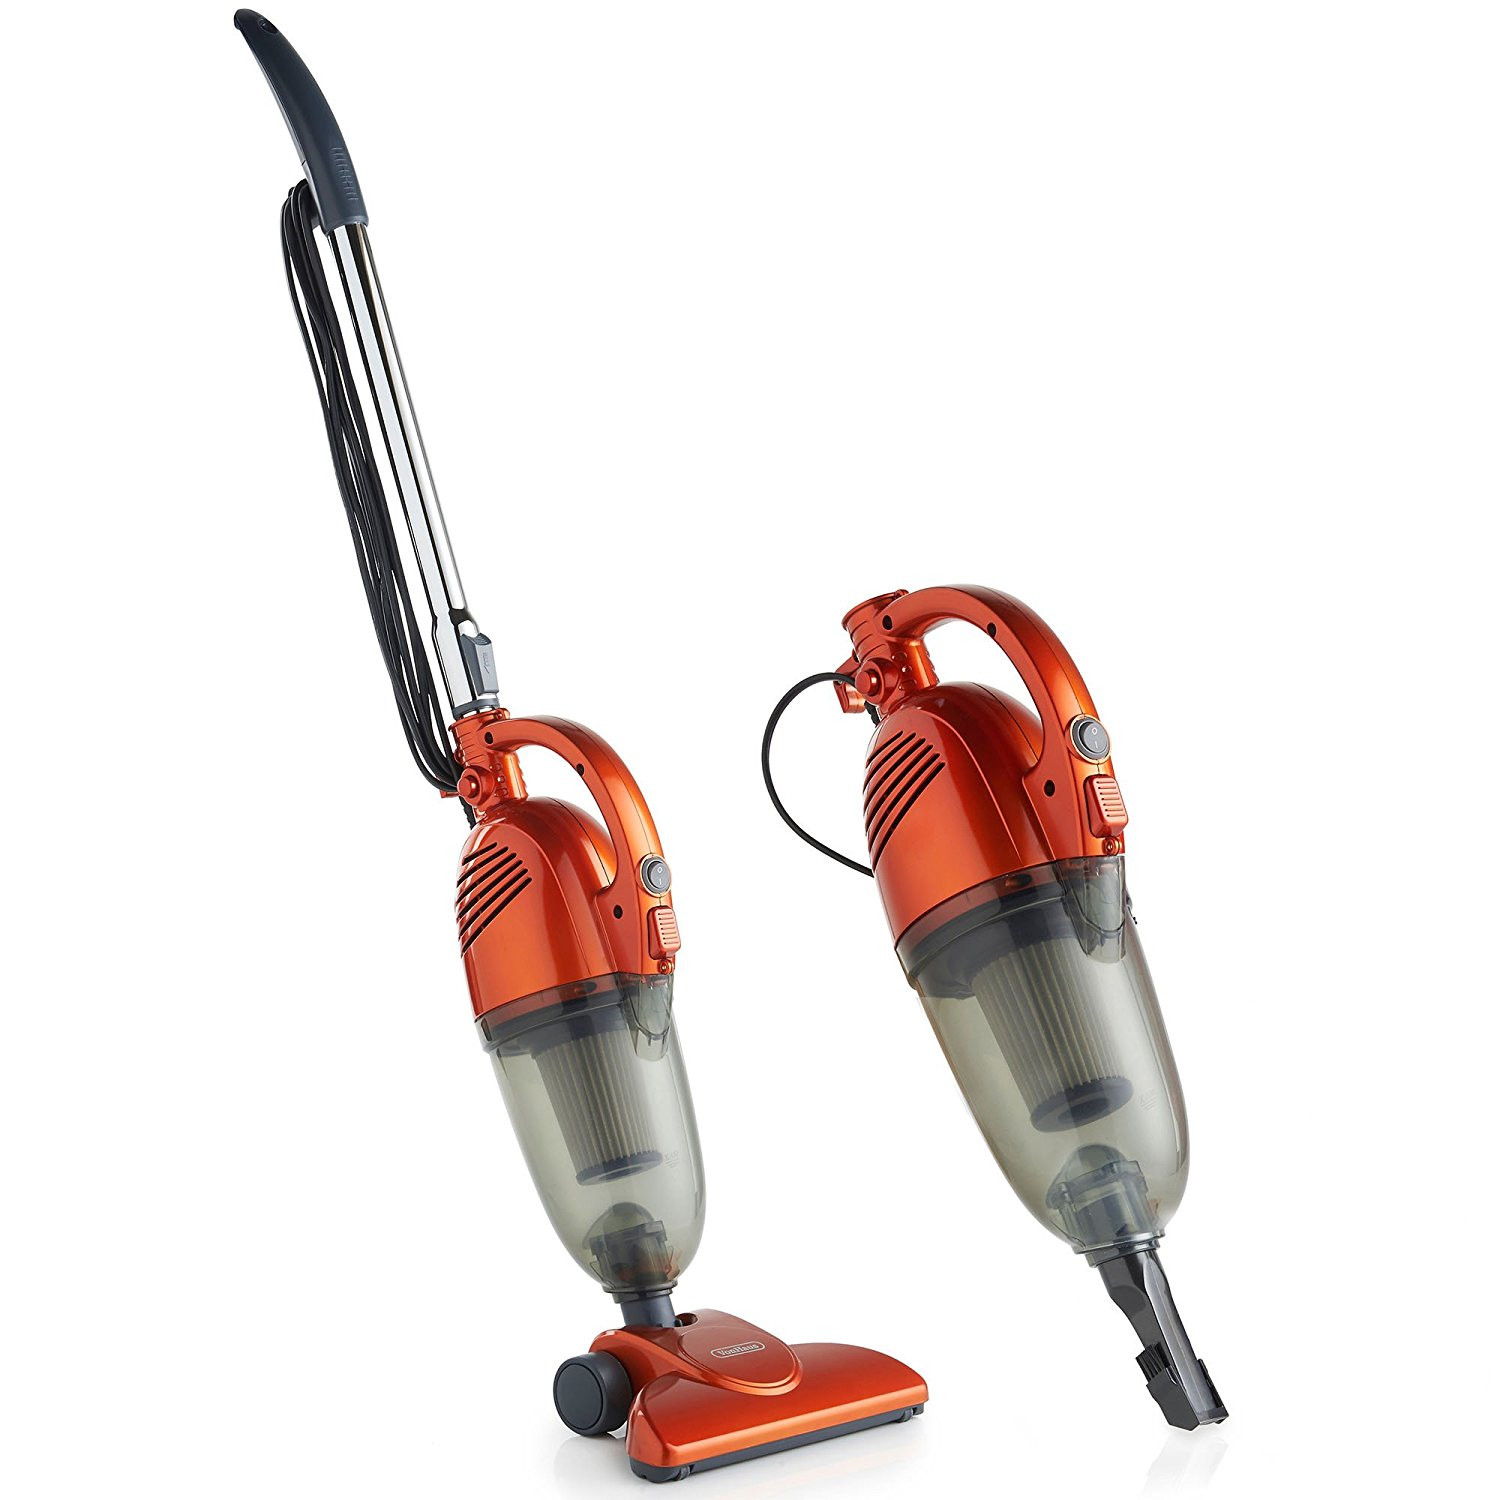 hardwood floor vacuum and steam cleaner reviews of 10 best vacuum for hardwood floors in 2018 complete guide for vonhaus 600w 2 in 1 corded upright stick handheld vacuum cleaner with hepa